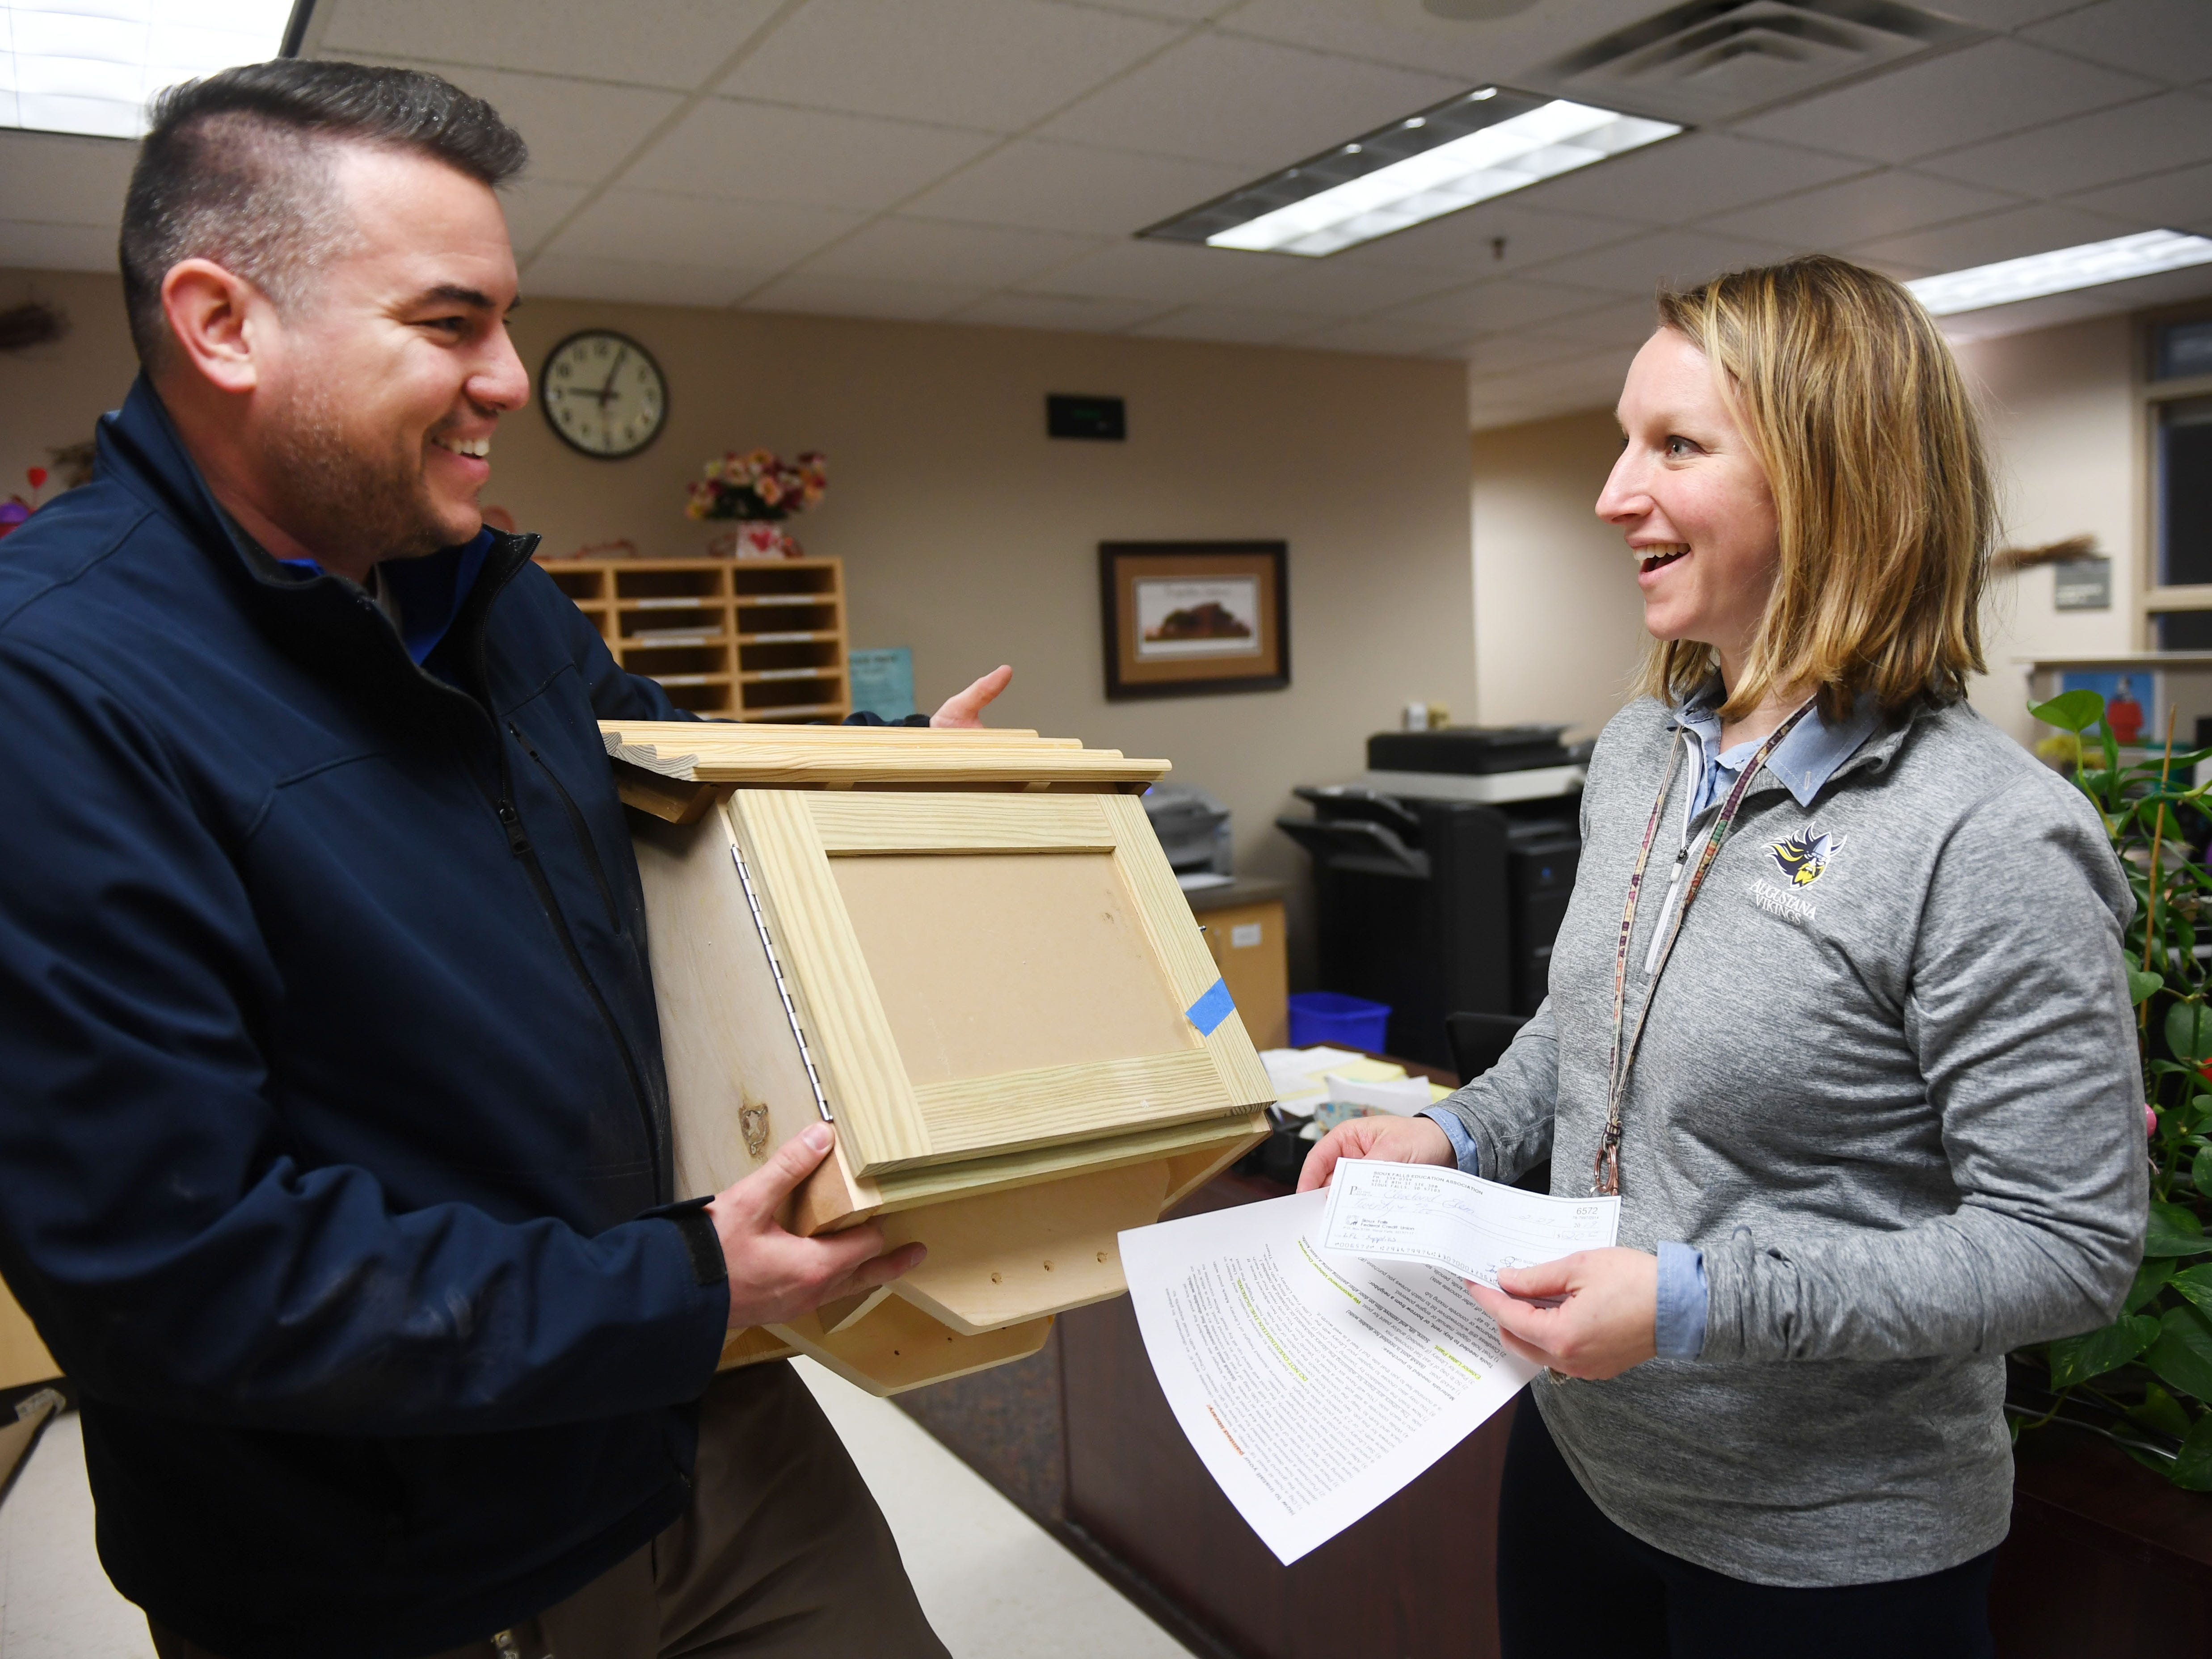 Tony Martinet, Sioux Falls Education Association President, delivers a Little Free Library to Cleveland Elementary School's assistant principal Amanda Bosch Friday, March 1, in Sioux Falls. Martinet went to six elementary schools to drop of the Little Free Libraries. He said they have a total of 10 Little Free Libraries they want to give to schools. Four of the libraries are still available.